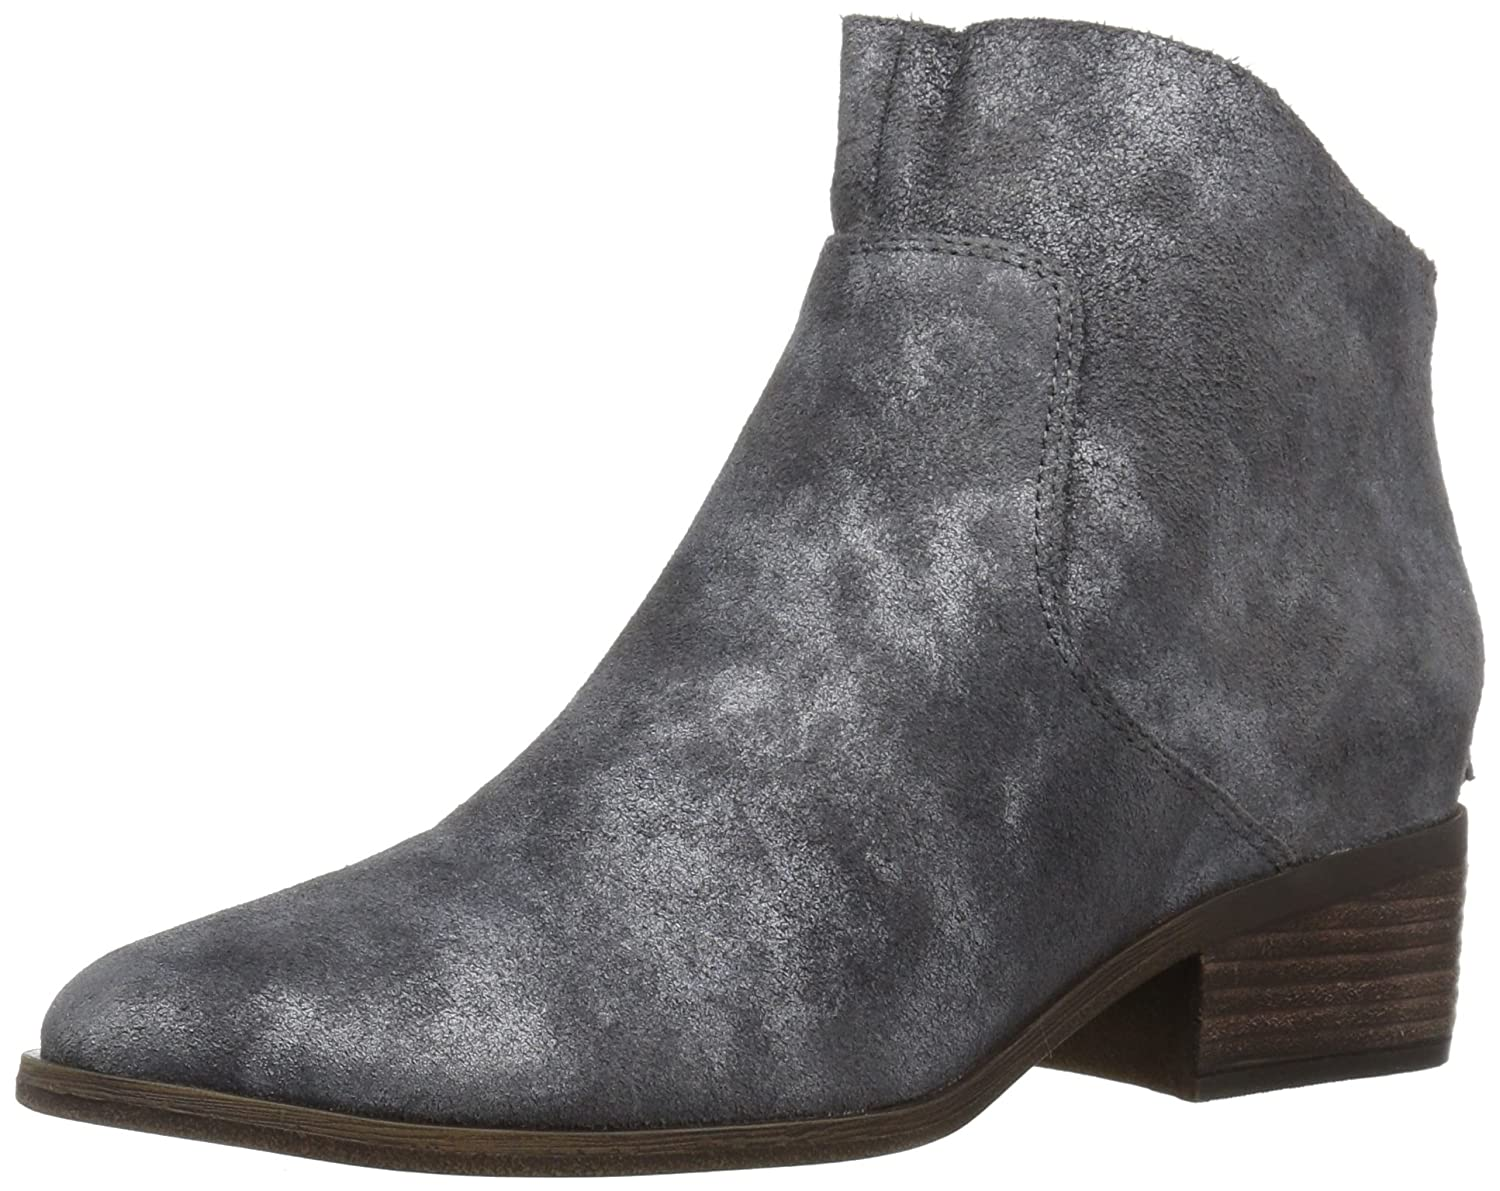 Lucky Brand Women's Lahela Fashion Boot B06XCZQL3Z 12 M US|Charcoal